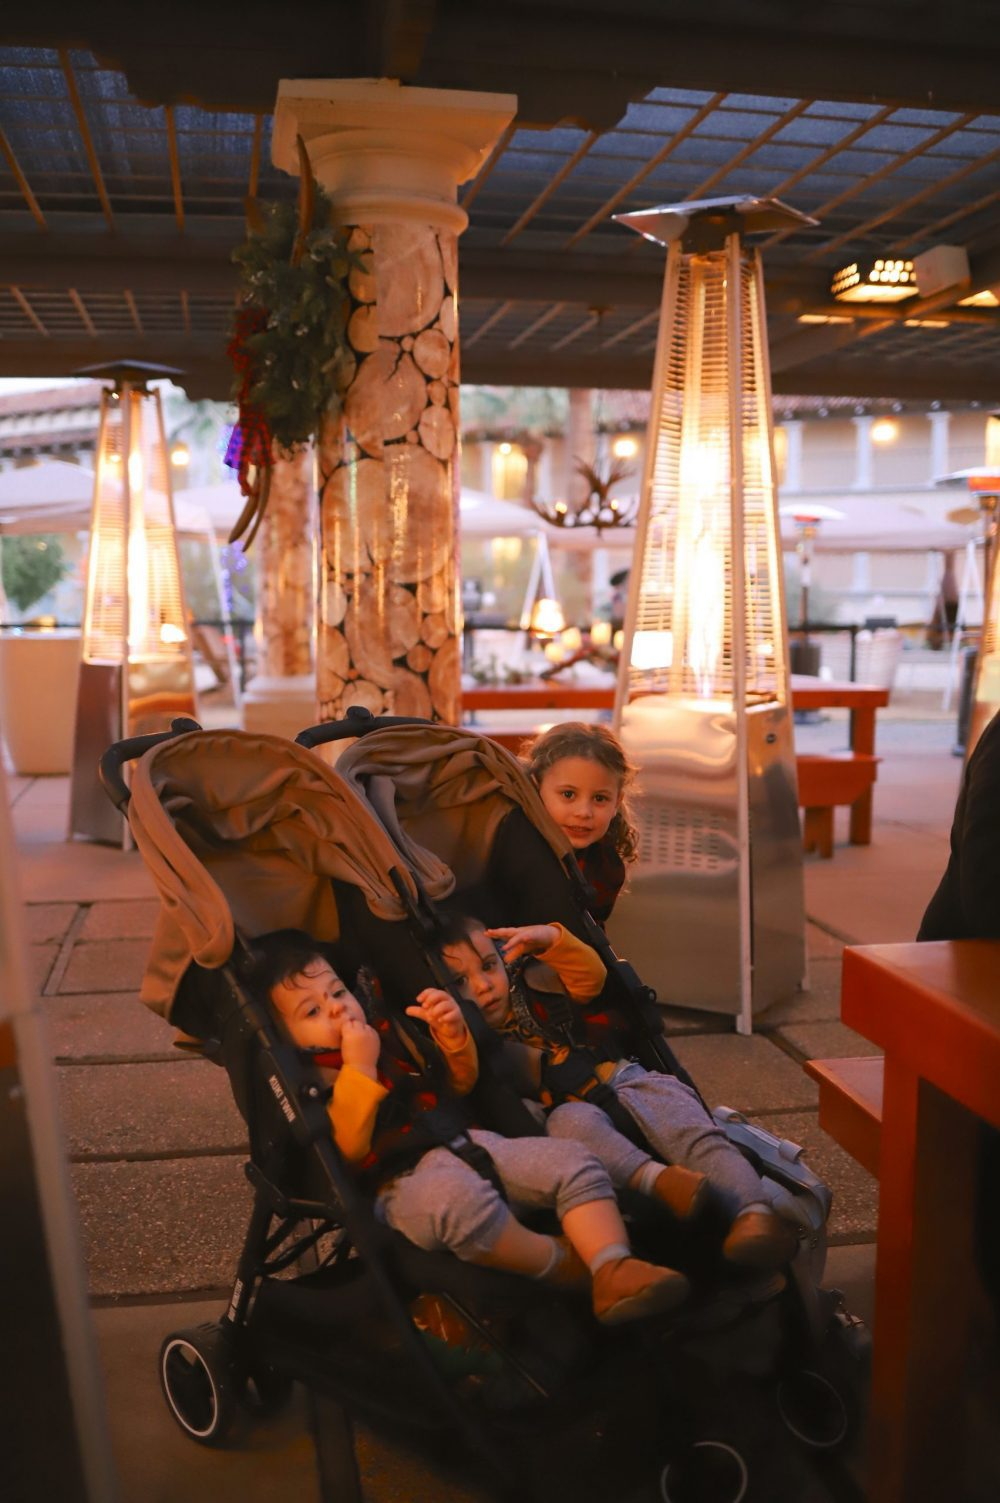 One of the Best Secret Winter Sun Destinations, Scottsdale Arizona. Family-friendly dinner at fun holiday pop up restaurant The Lodge at Scottsdale Christmas at the Princess |Guide by popular Florida travel blog, Fresh Mommy Blog: image of kids at The Lodge at Scottsdale Christmas at the Princess.